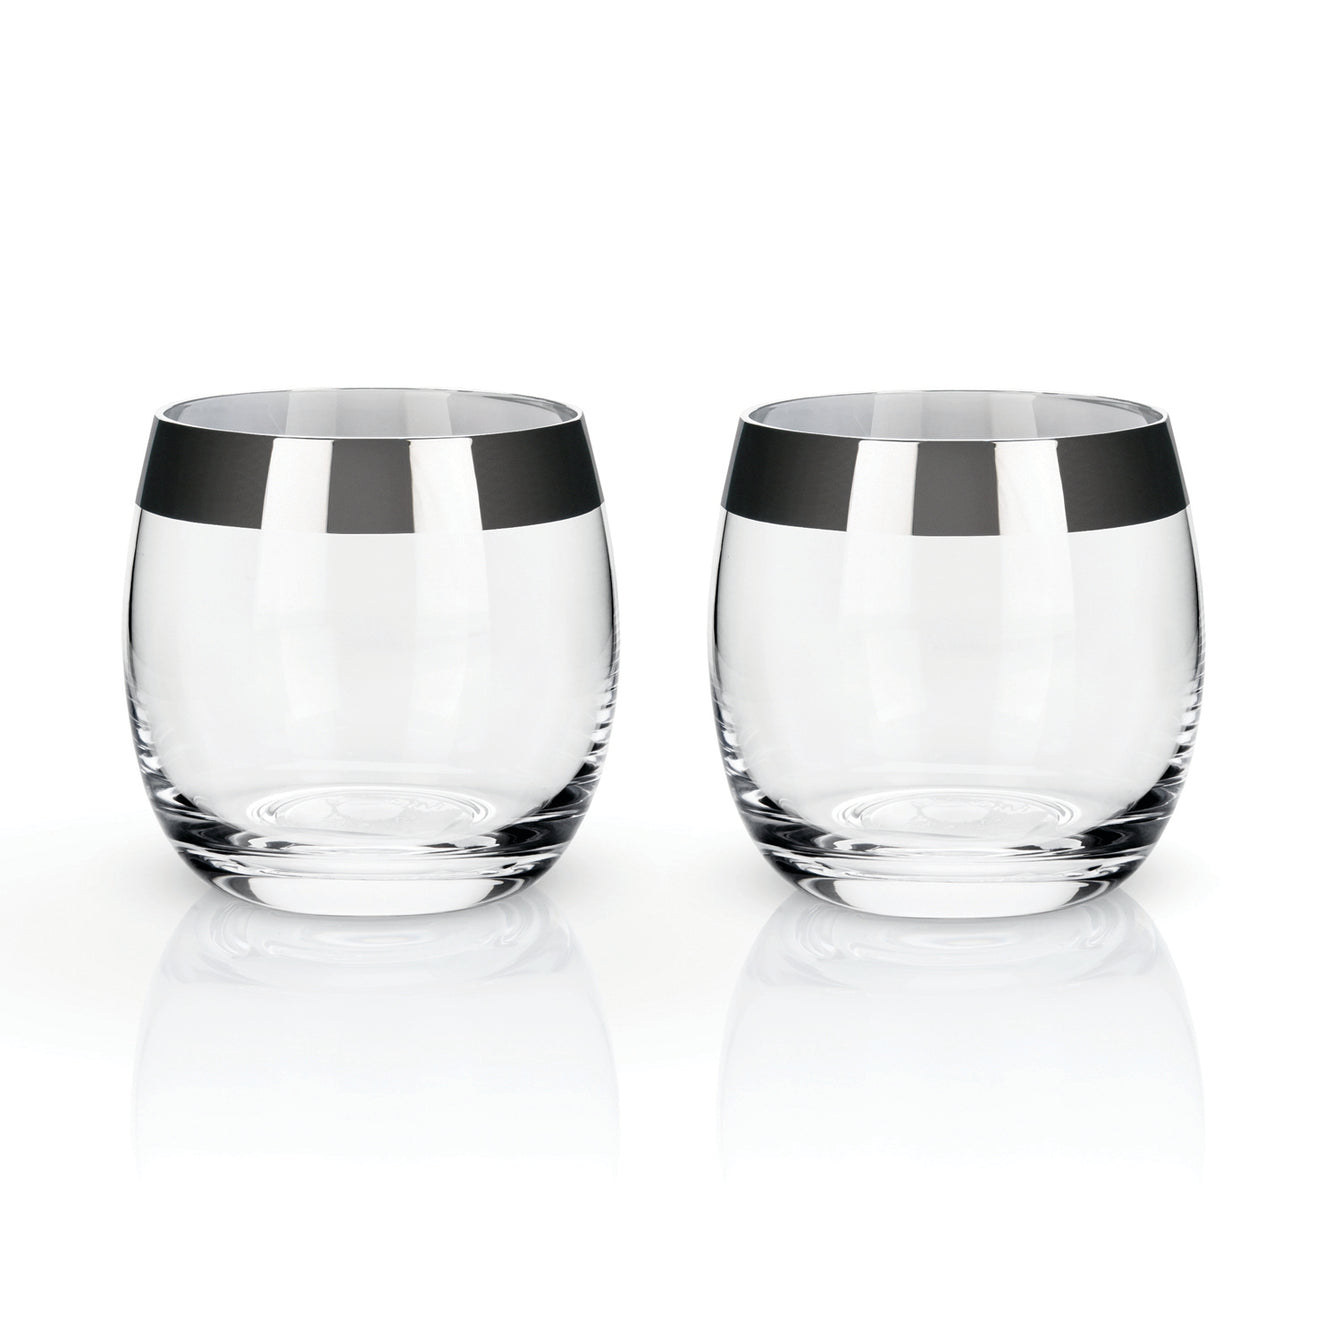 Metallic Rim Crystal Tumblers Set of 2-Home - Entertaining - Tumblers Sets-VISKI-Bronze-Peccadilly